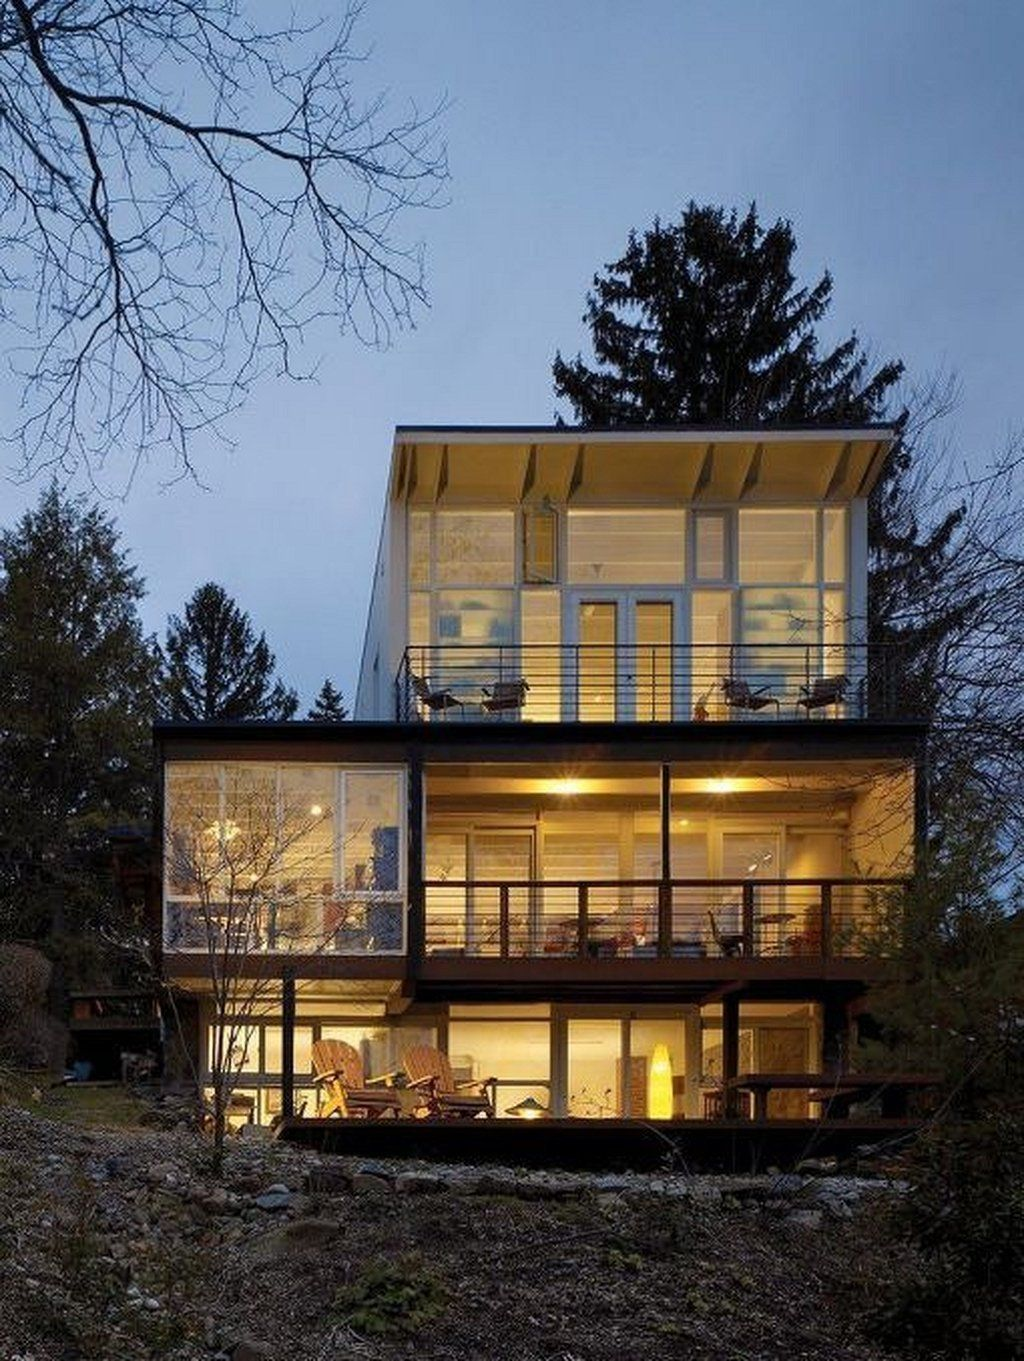 Shipping cntainer house design ideas also top container home designs houses rh pinterest